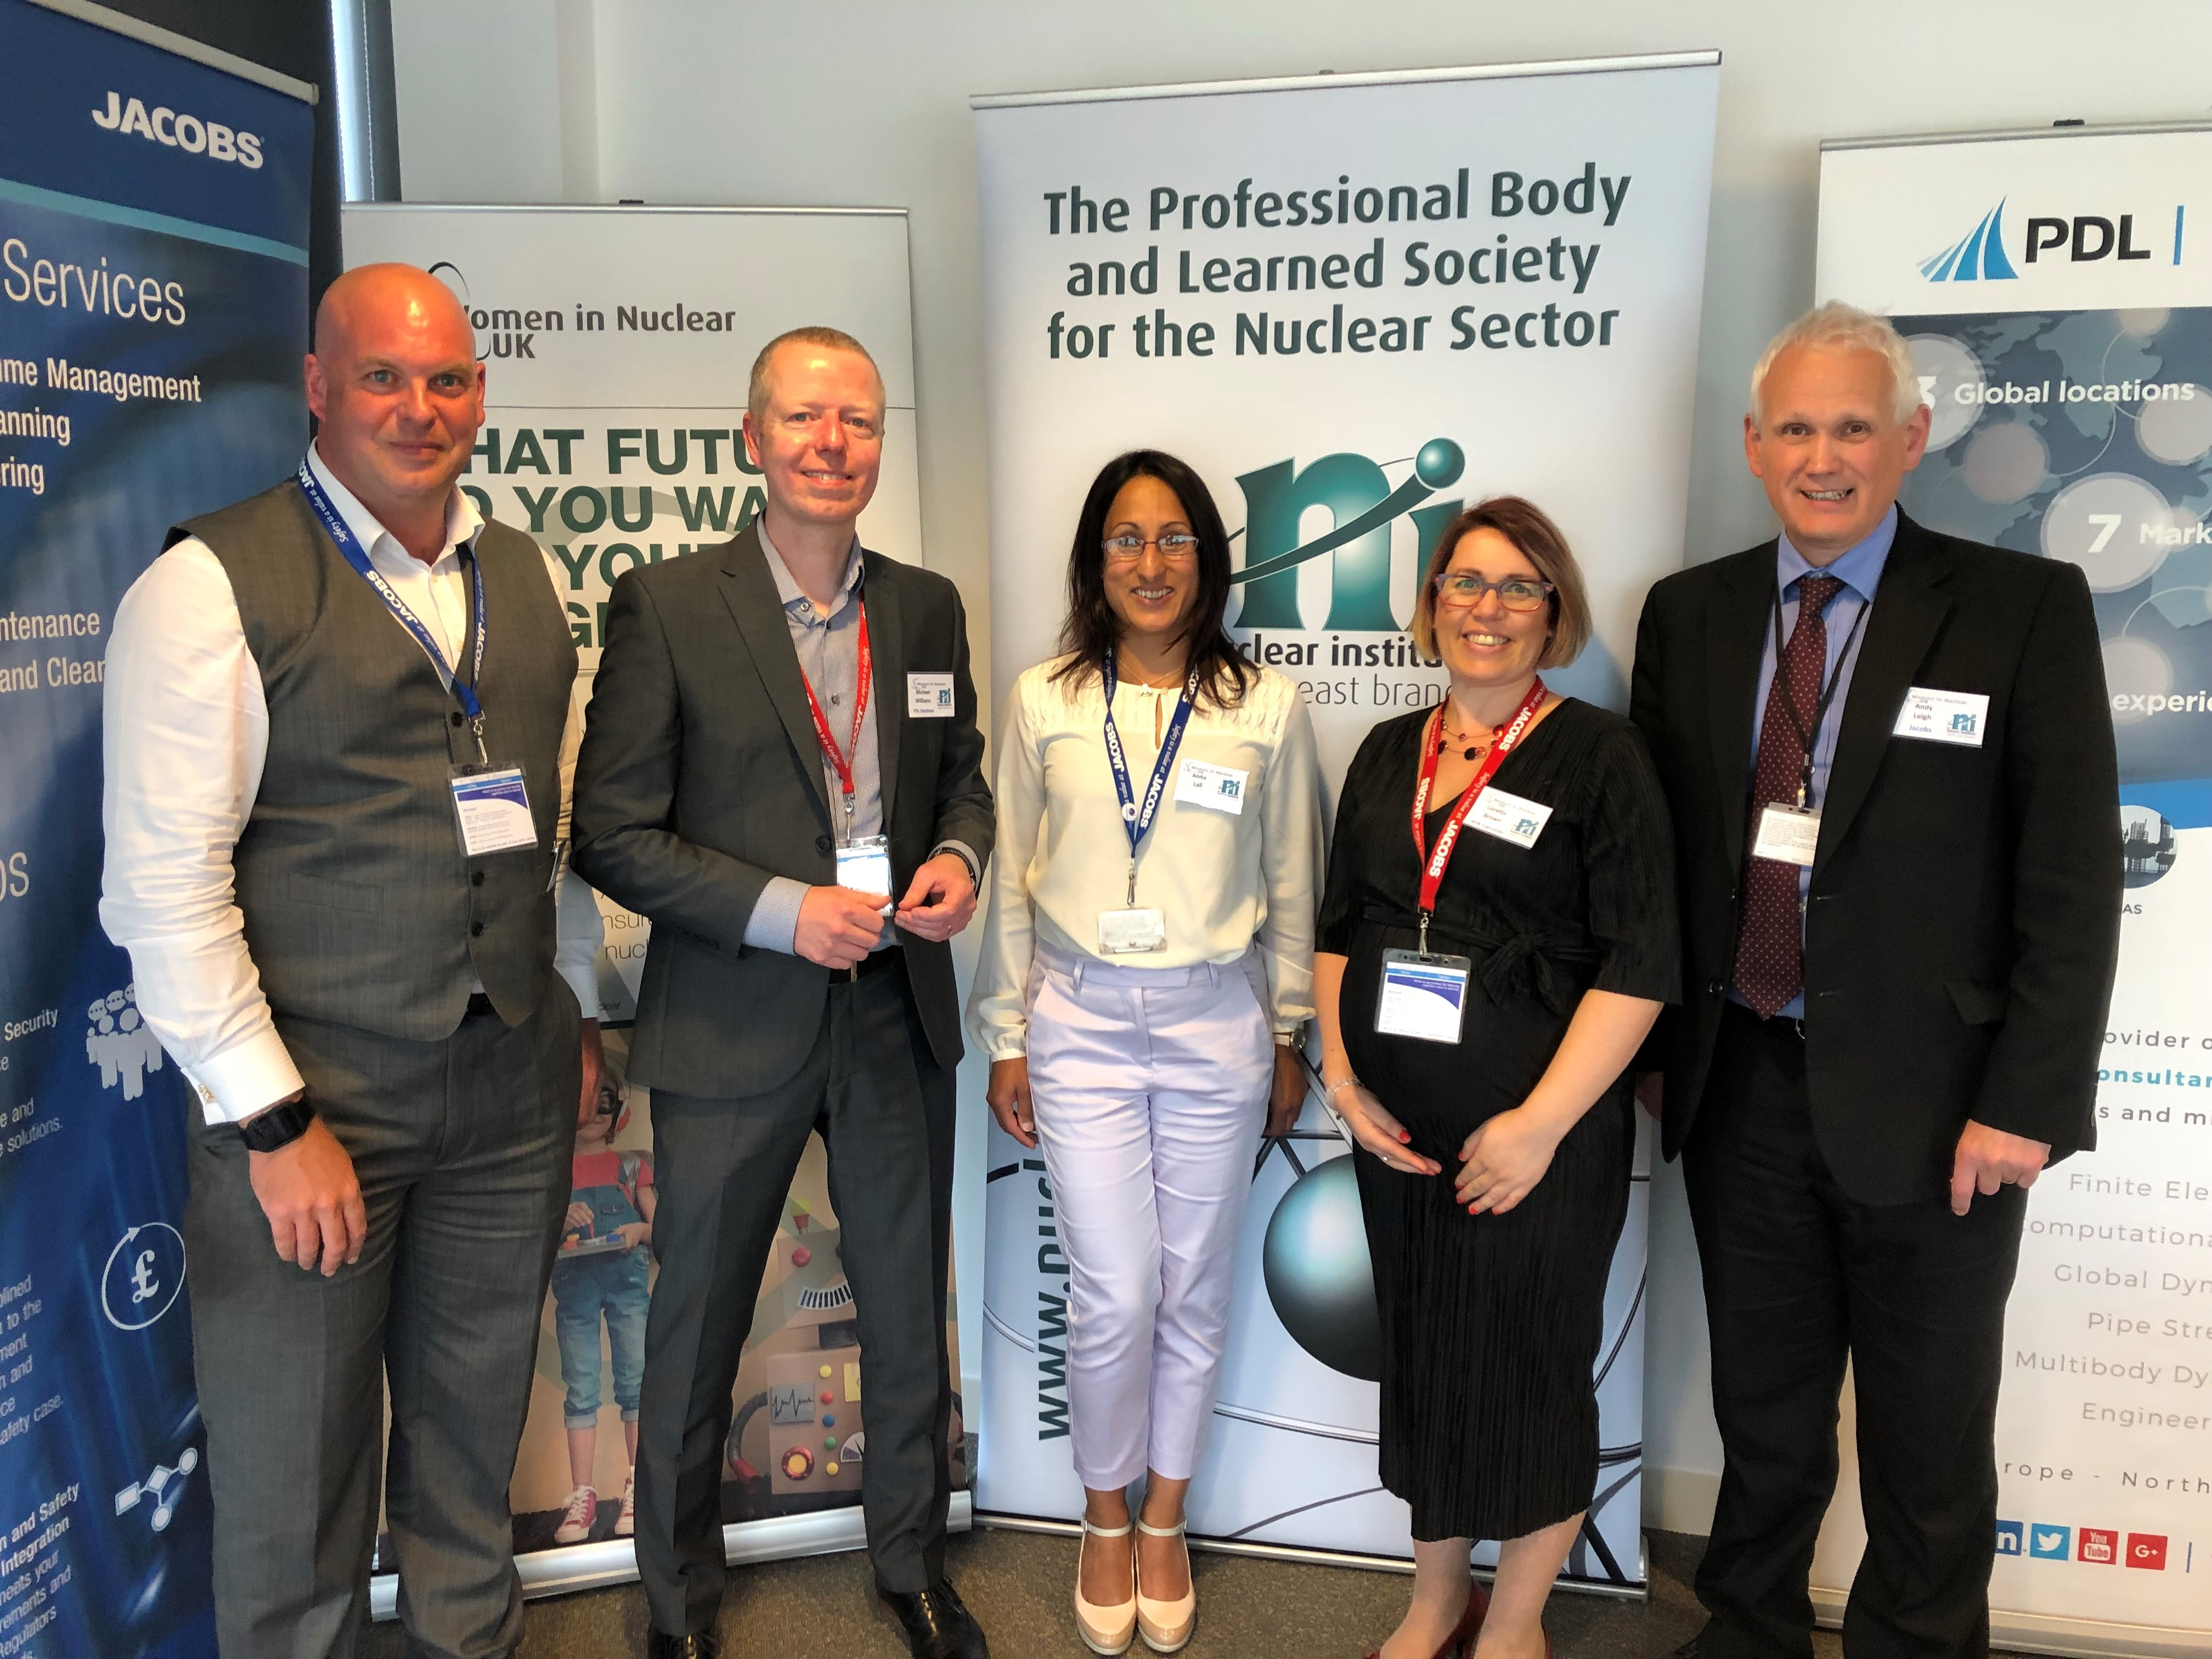 Women in Nuclear (WiN) Seminar review: Developing an Innovative and Sustainable Capability